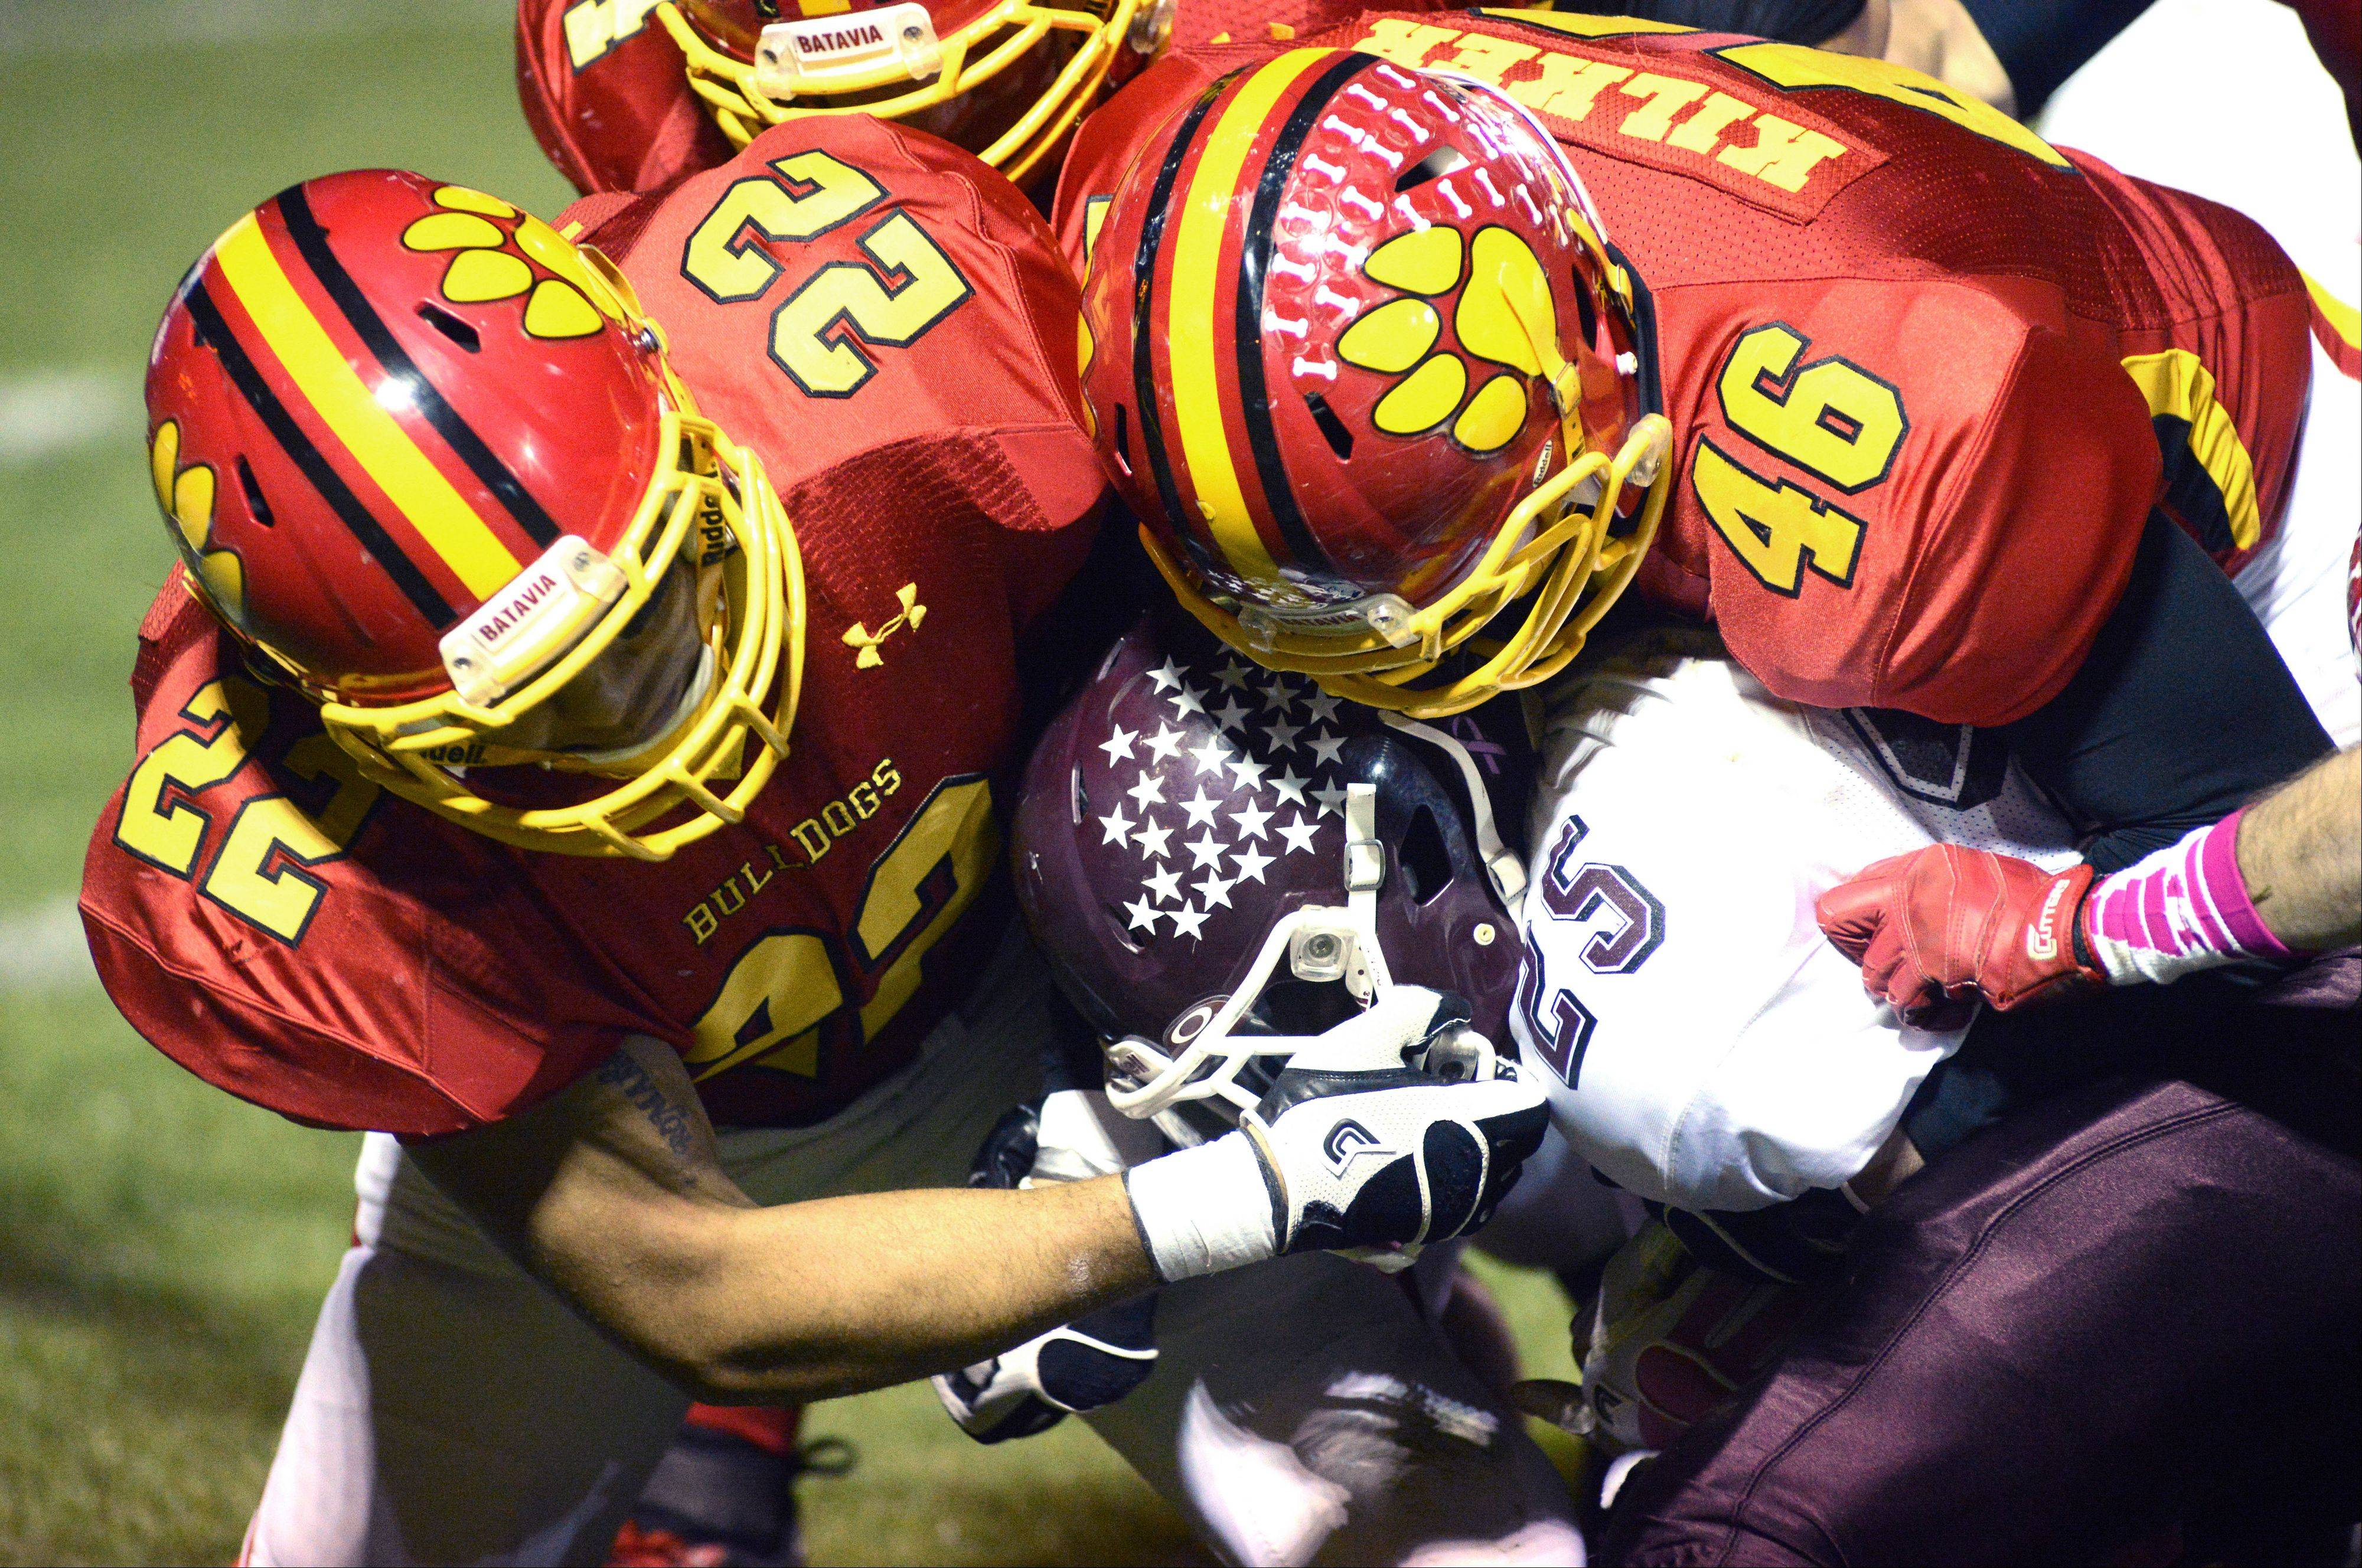 Elgin's Johnny Higgins is slammed to the ground by Batavia's Anthony Thielk and Donovan Kilkerin the first quarter.